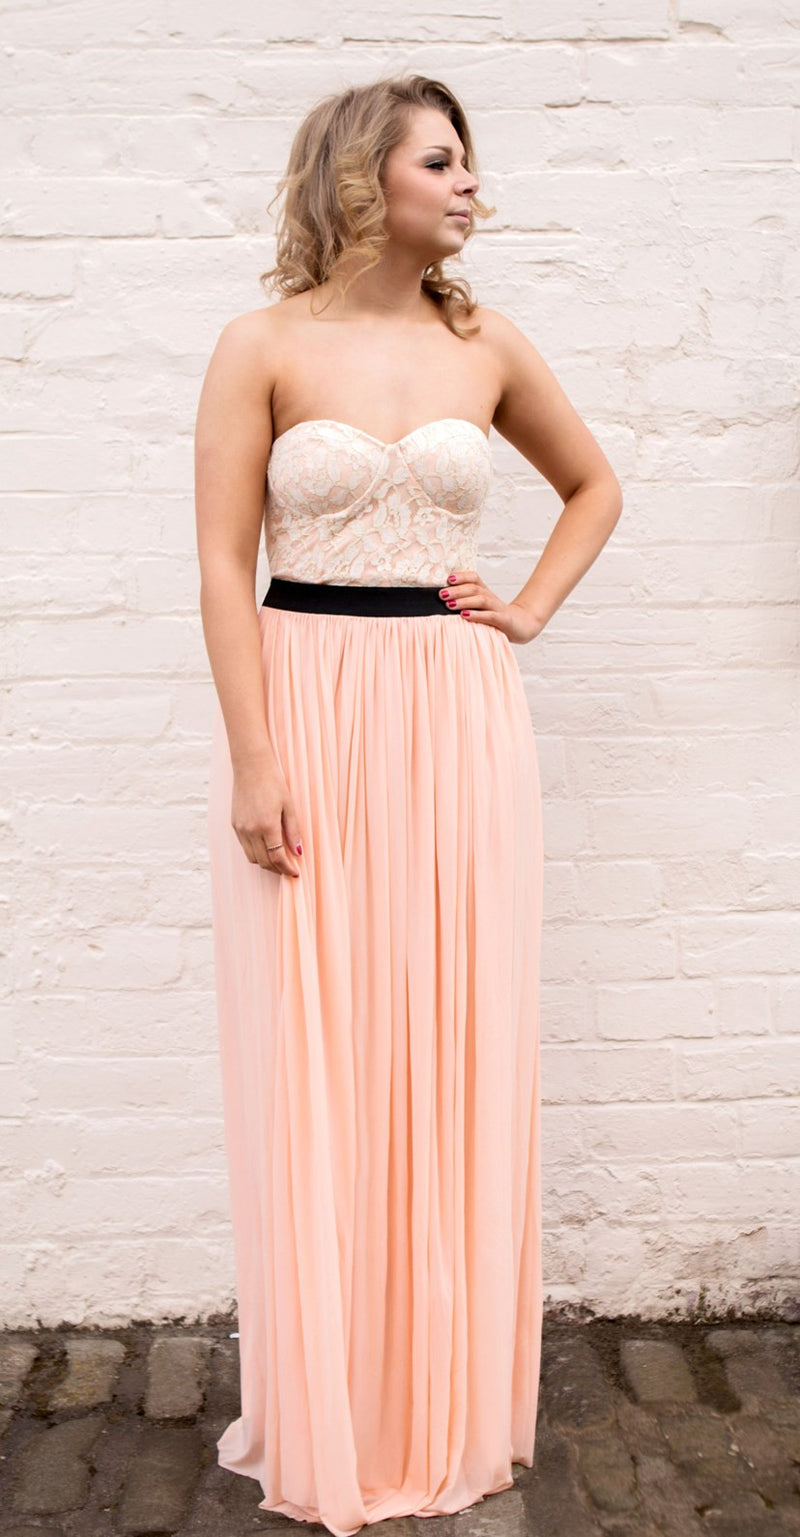 Rare Cream And Peach Bustier Maxi Dress - Glitzy Angel